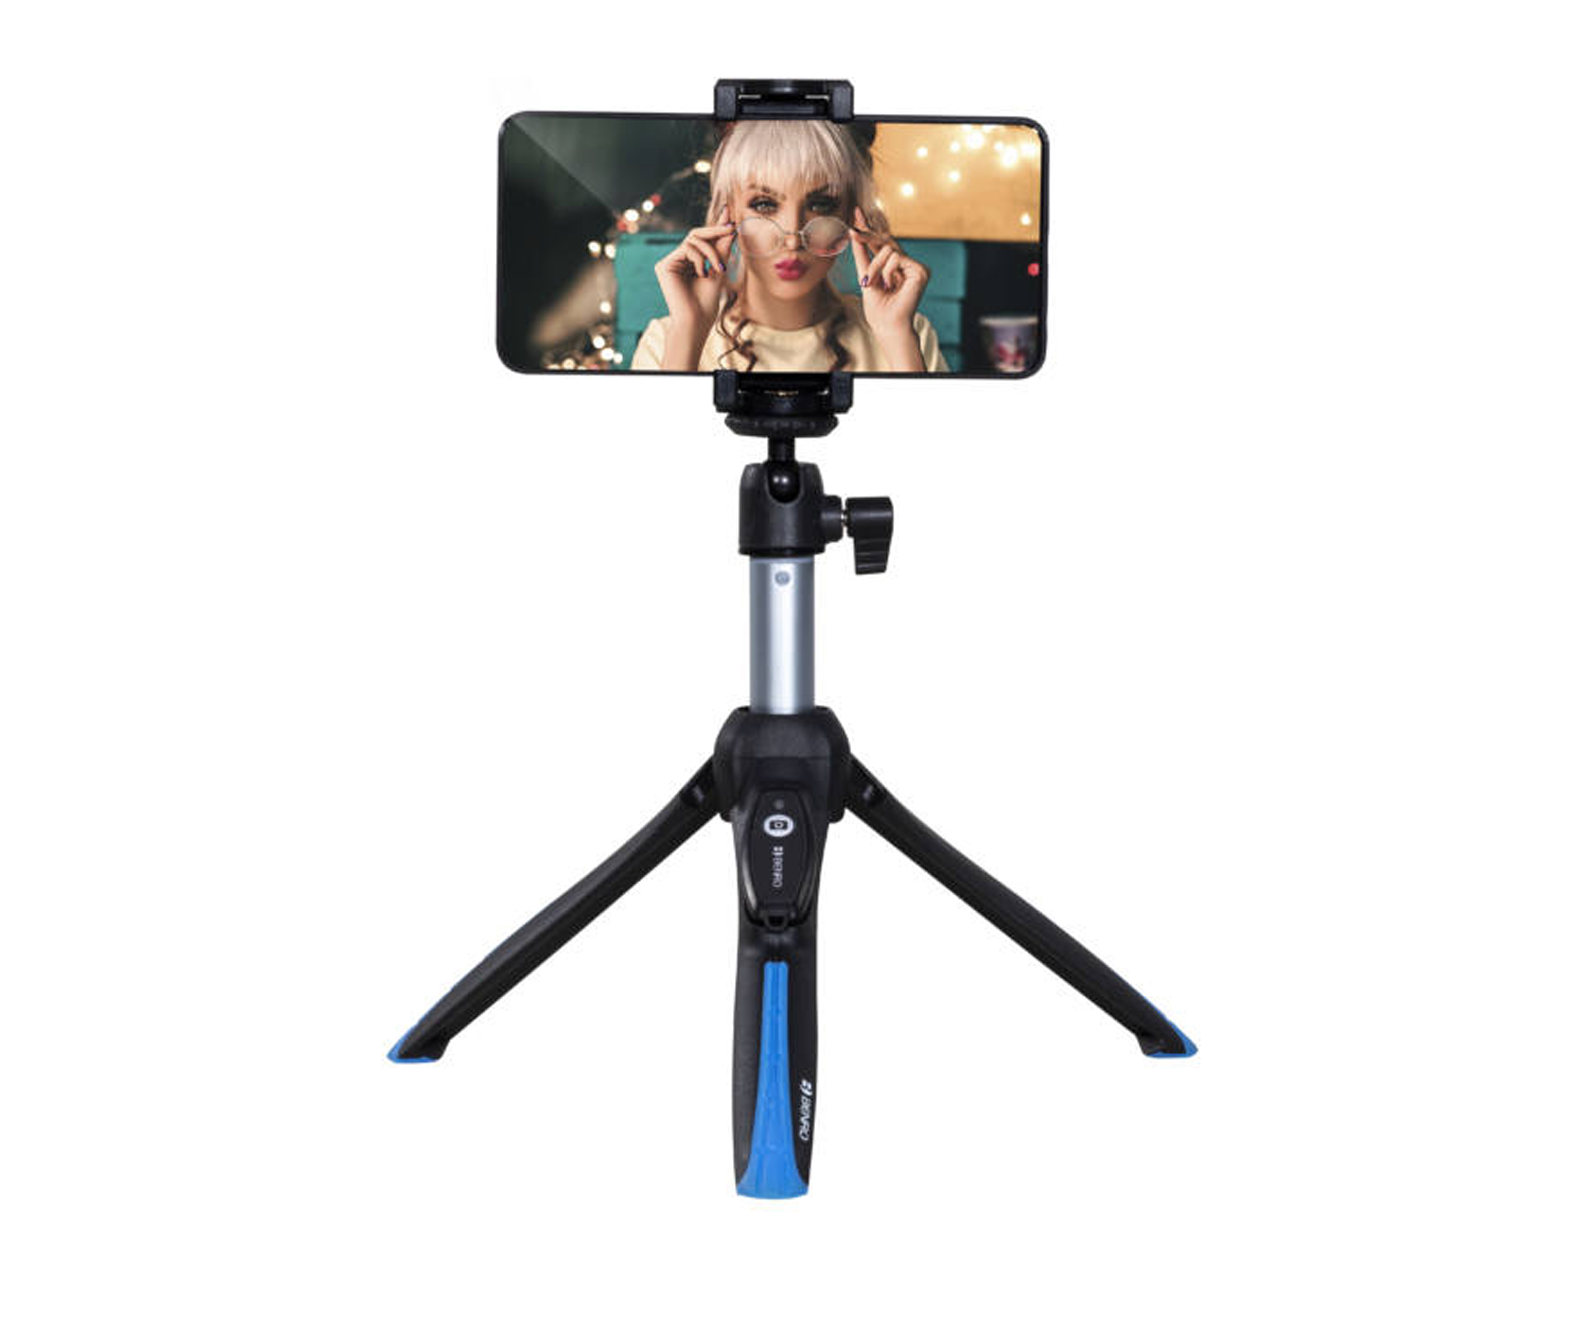 Benro BK15 Mini Tripod and Selfie Stick with Bluetooth Remote